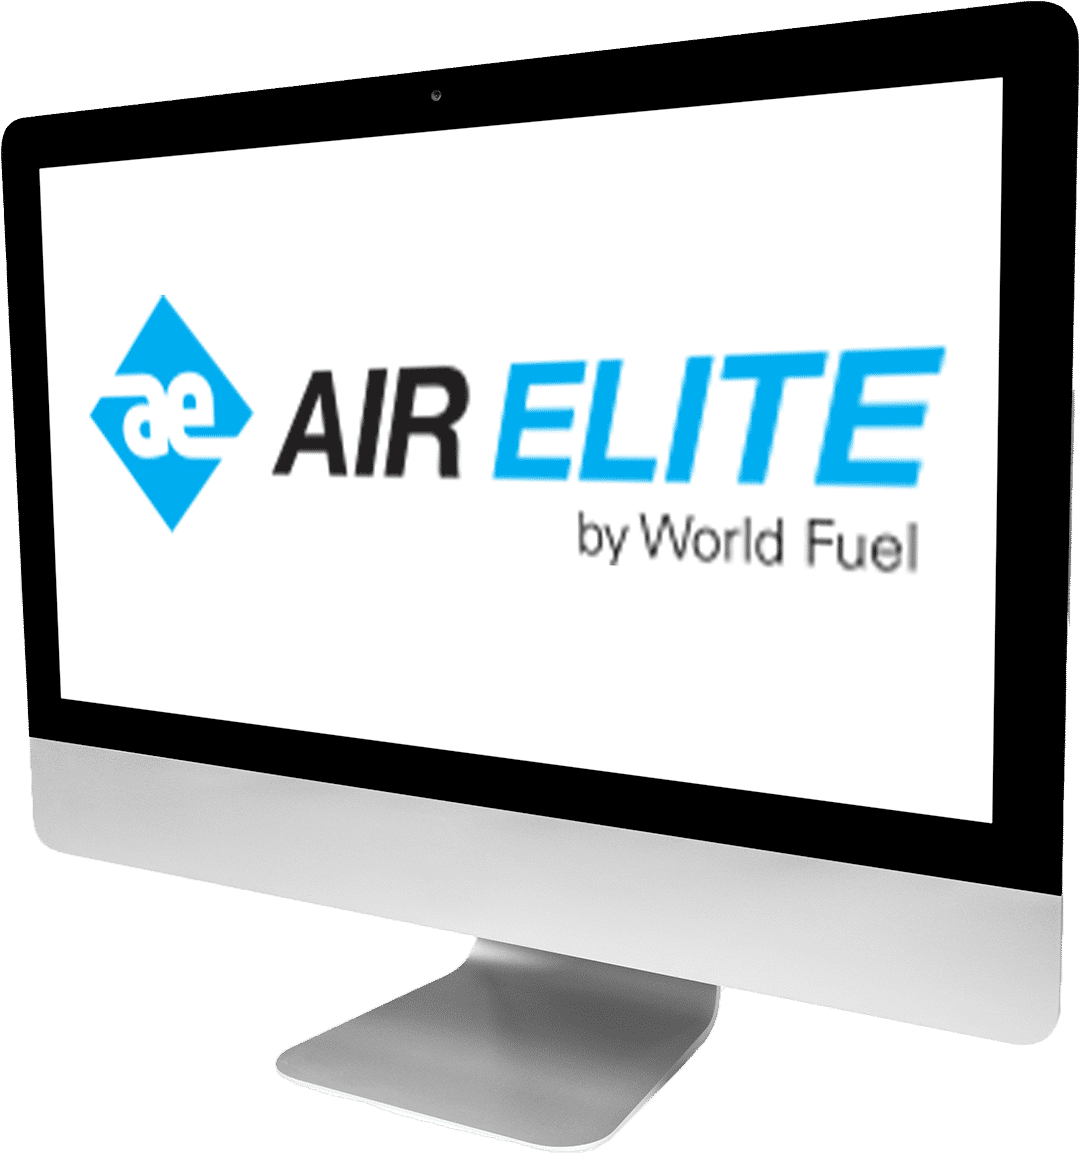 Air Elite by World Fuel